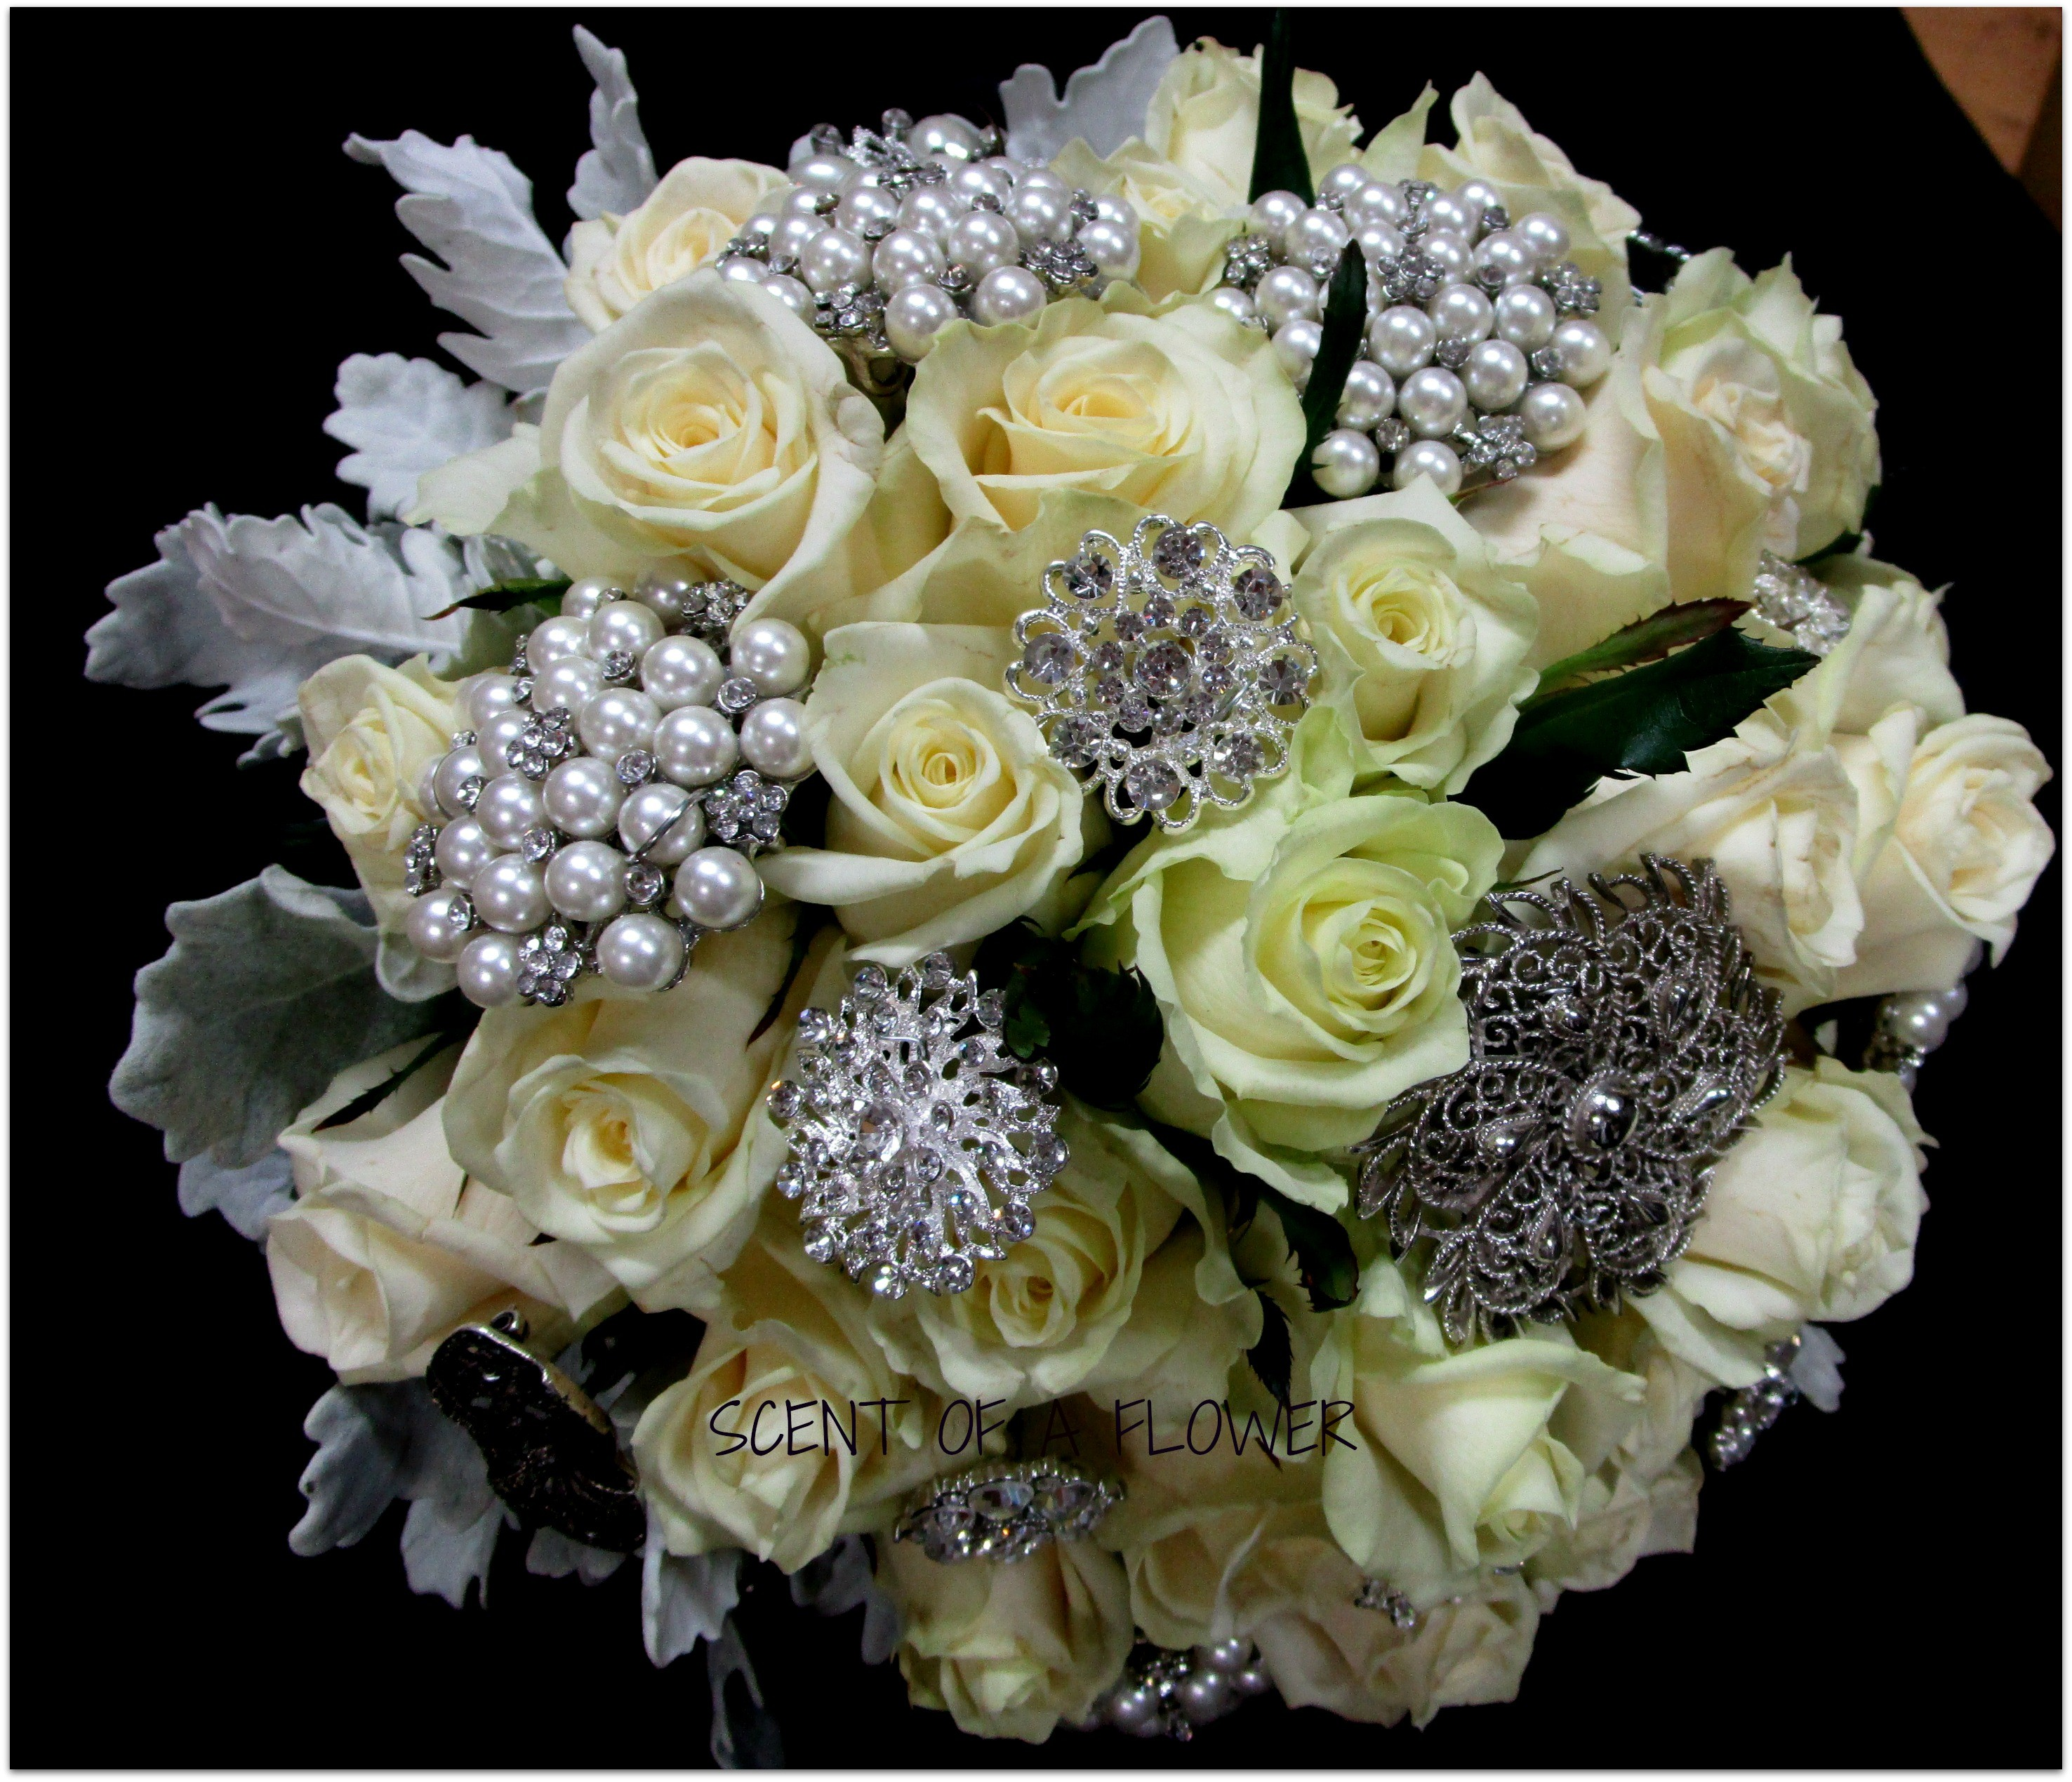 Wedding Bouquets Melbourne: Wedding Flowers Melbourne • Scent Of A Flower